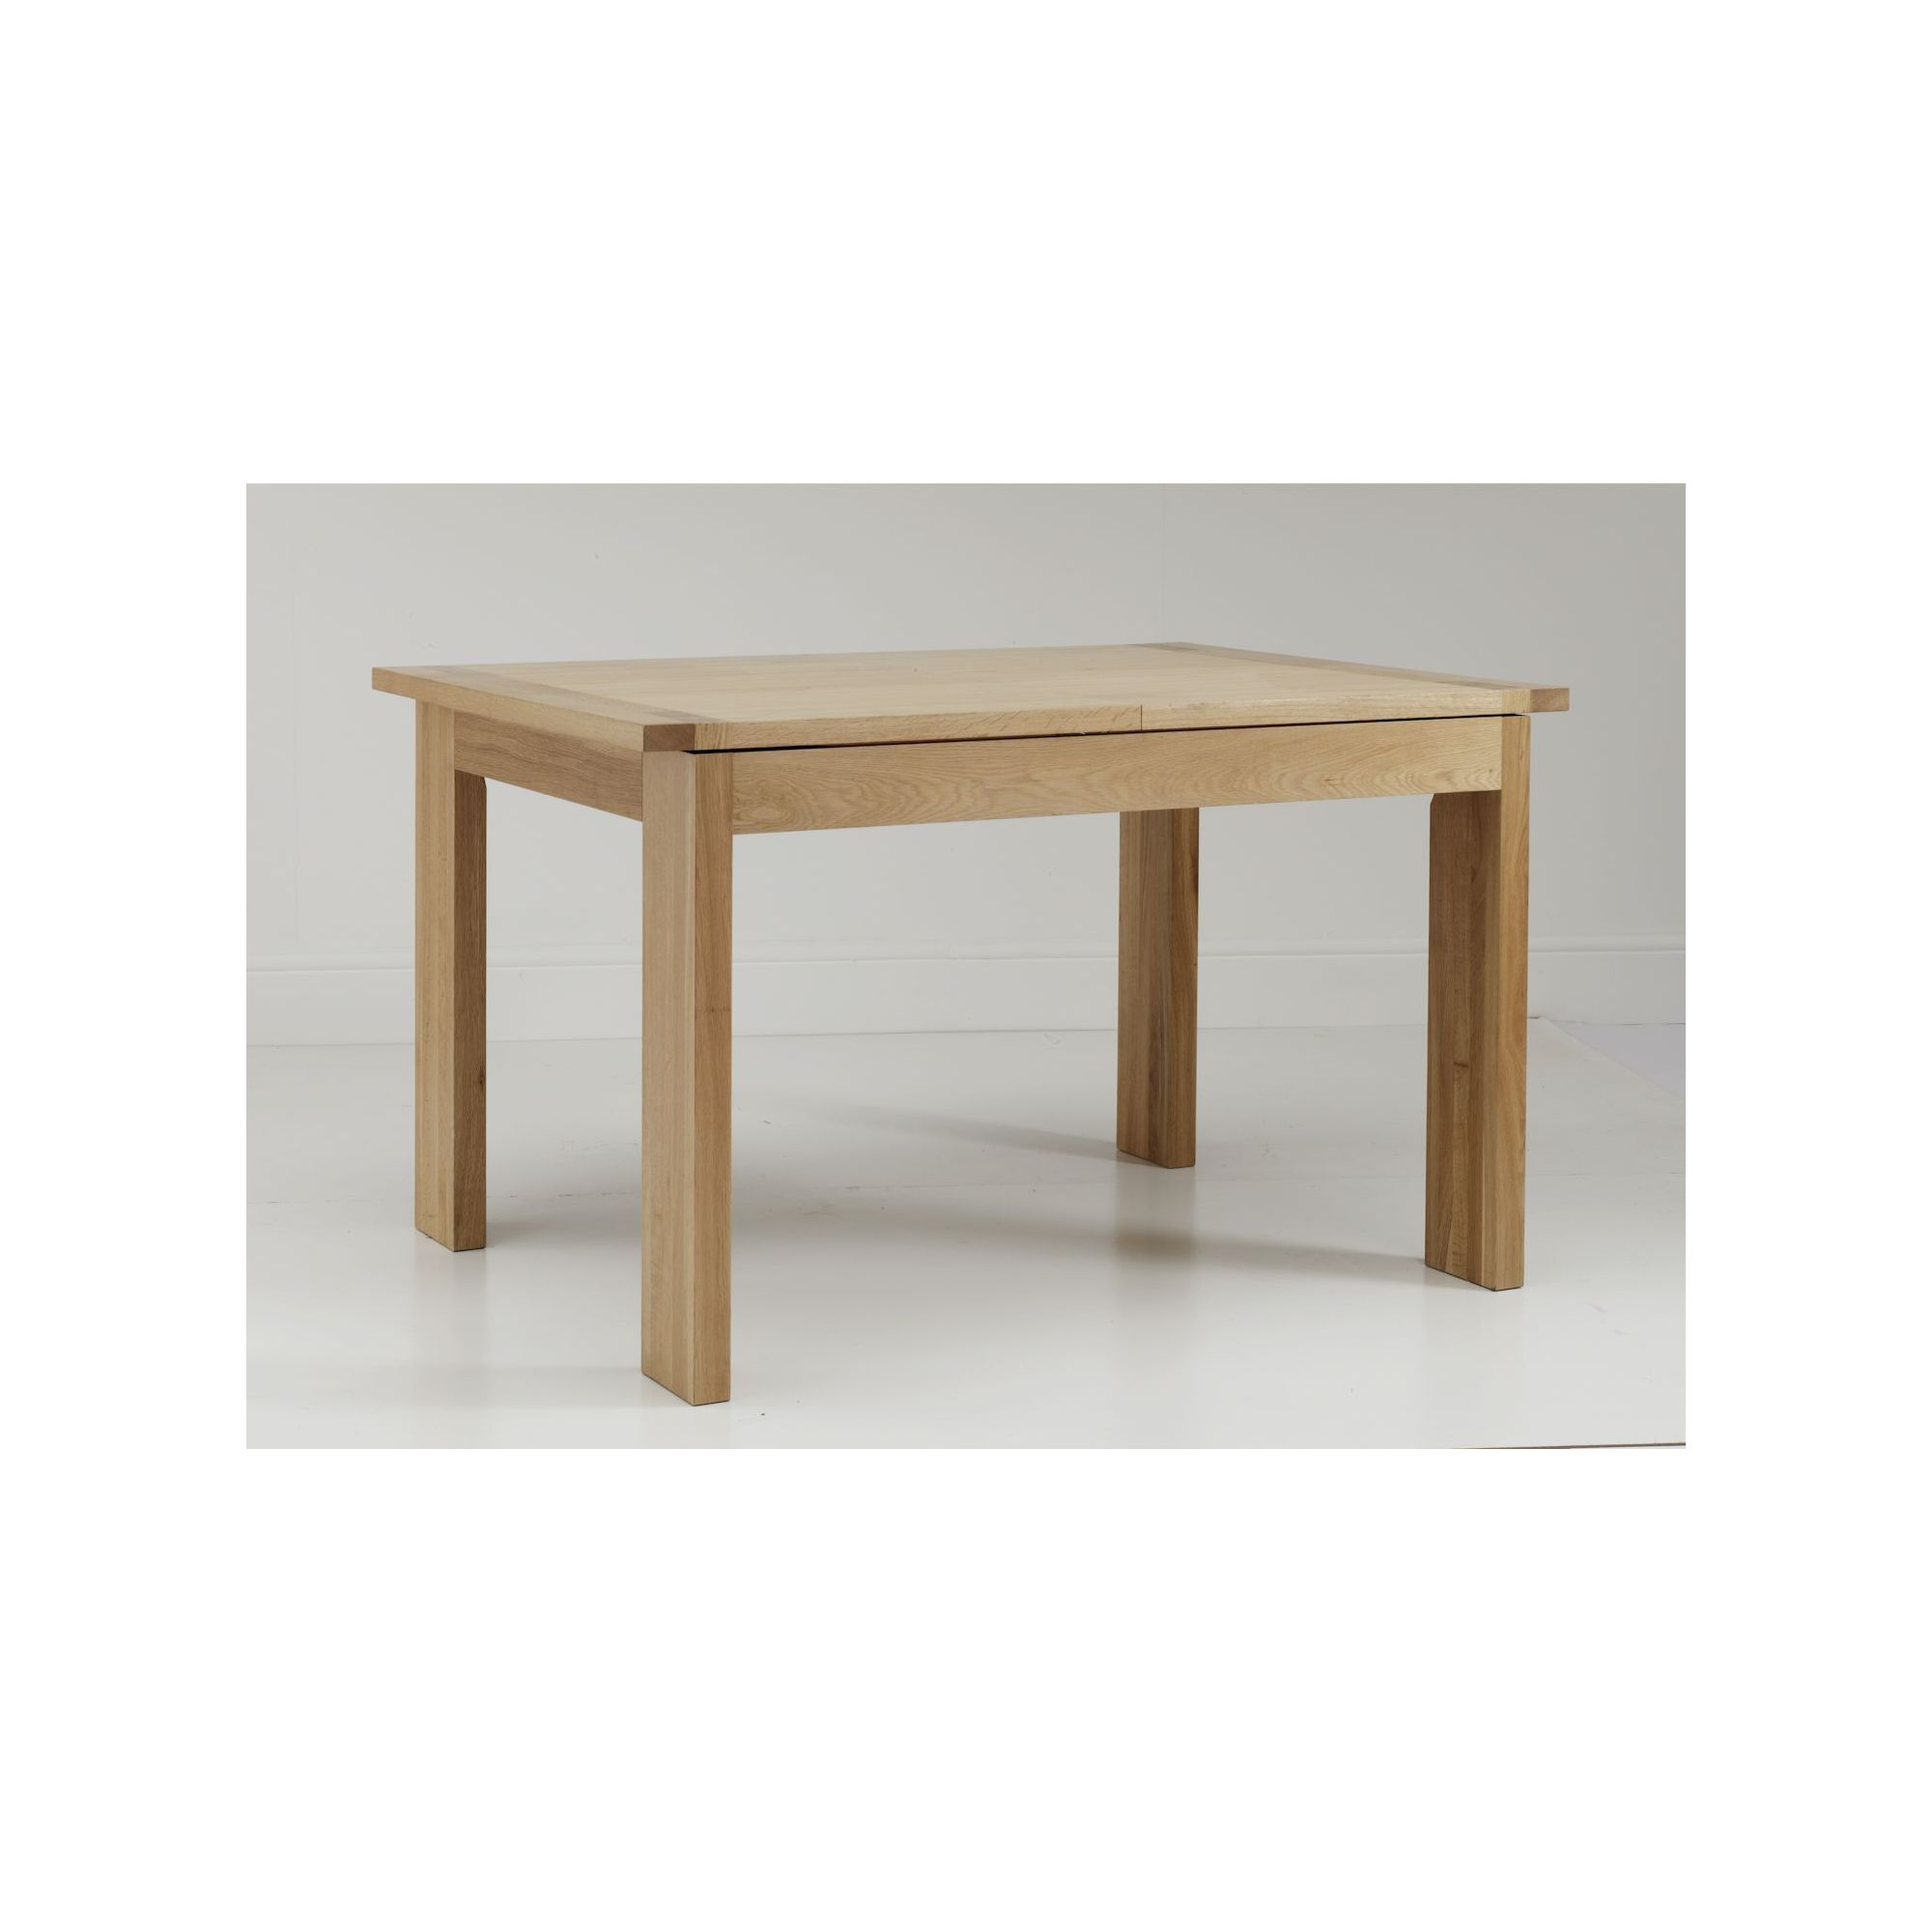 Originals Xanadu Solid Oak Dining Small Extendable Table